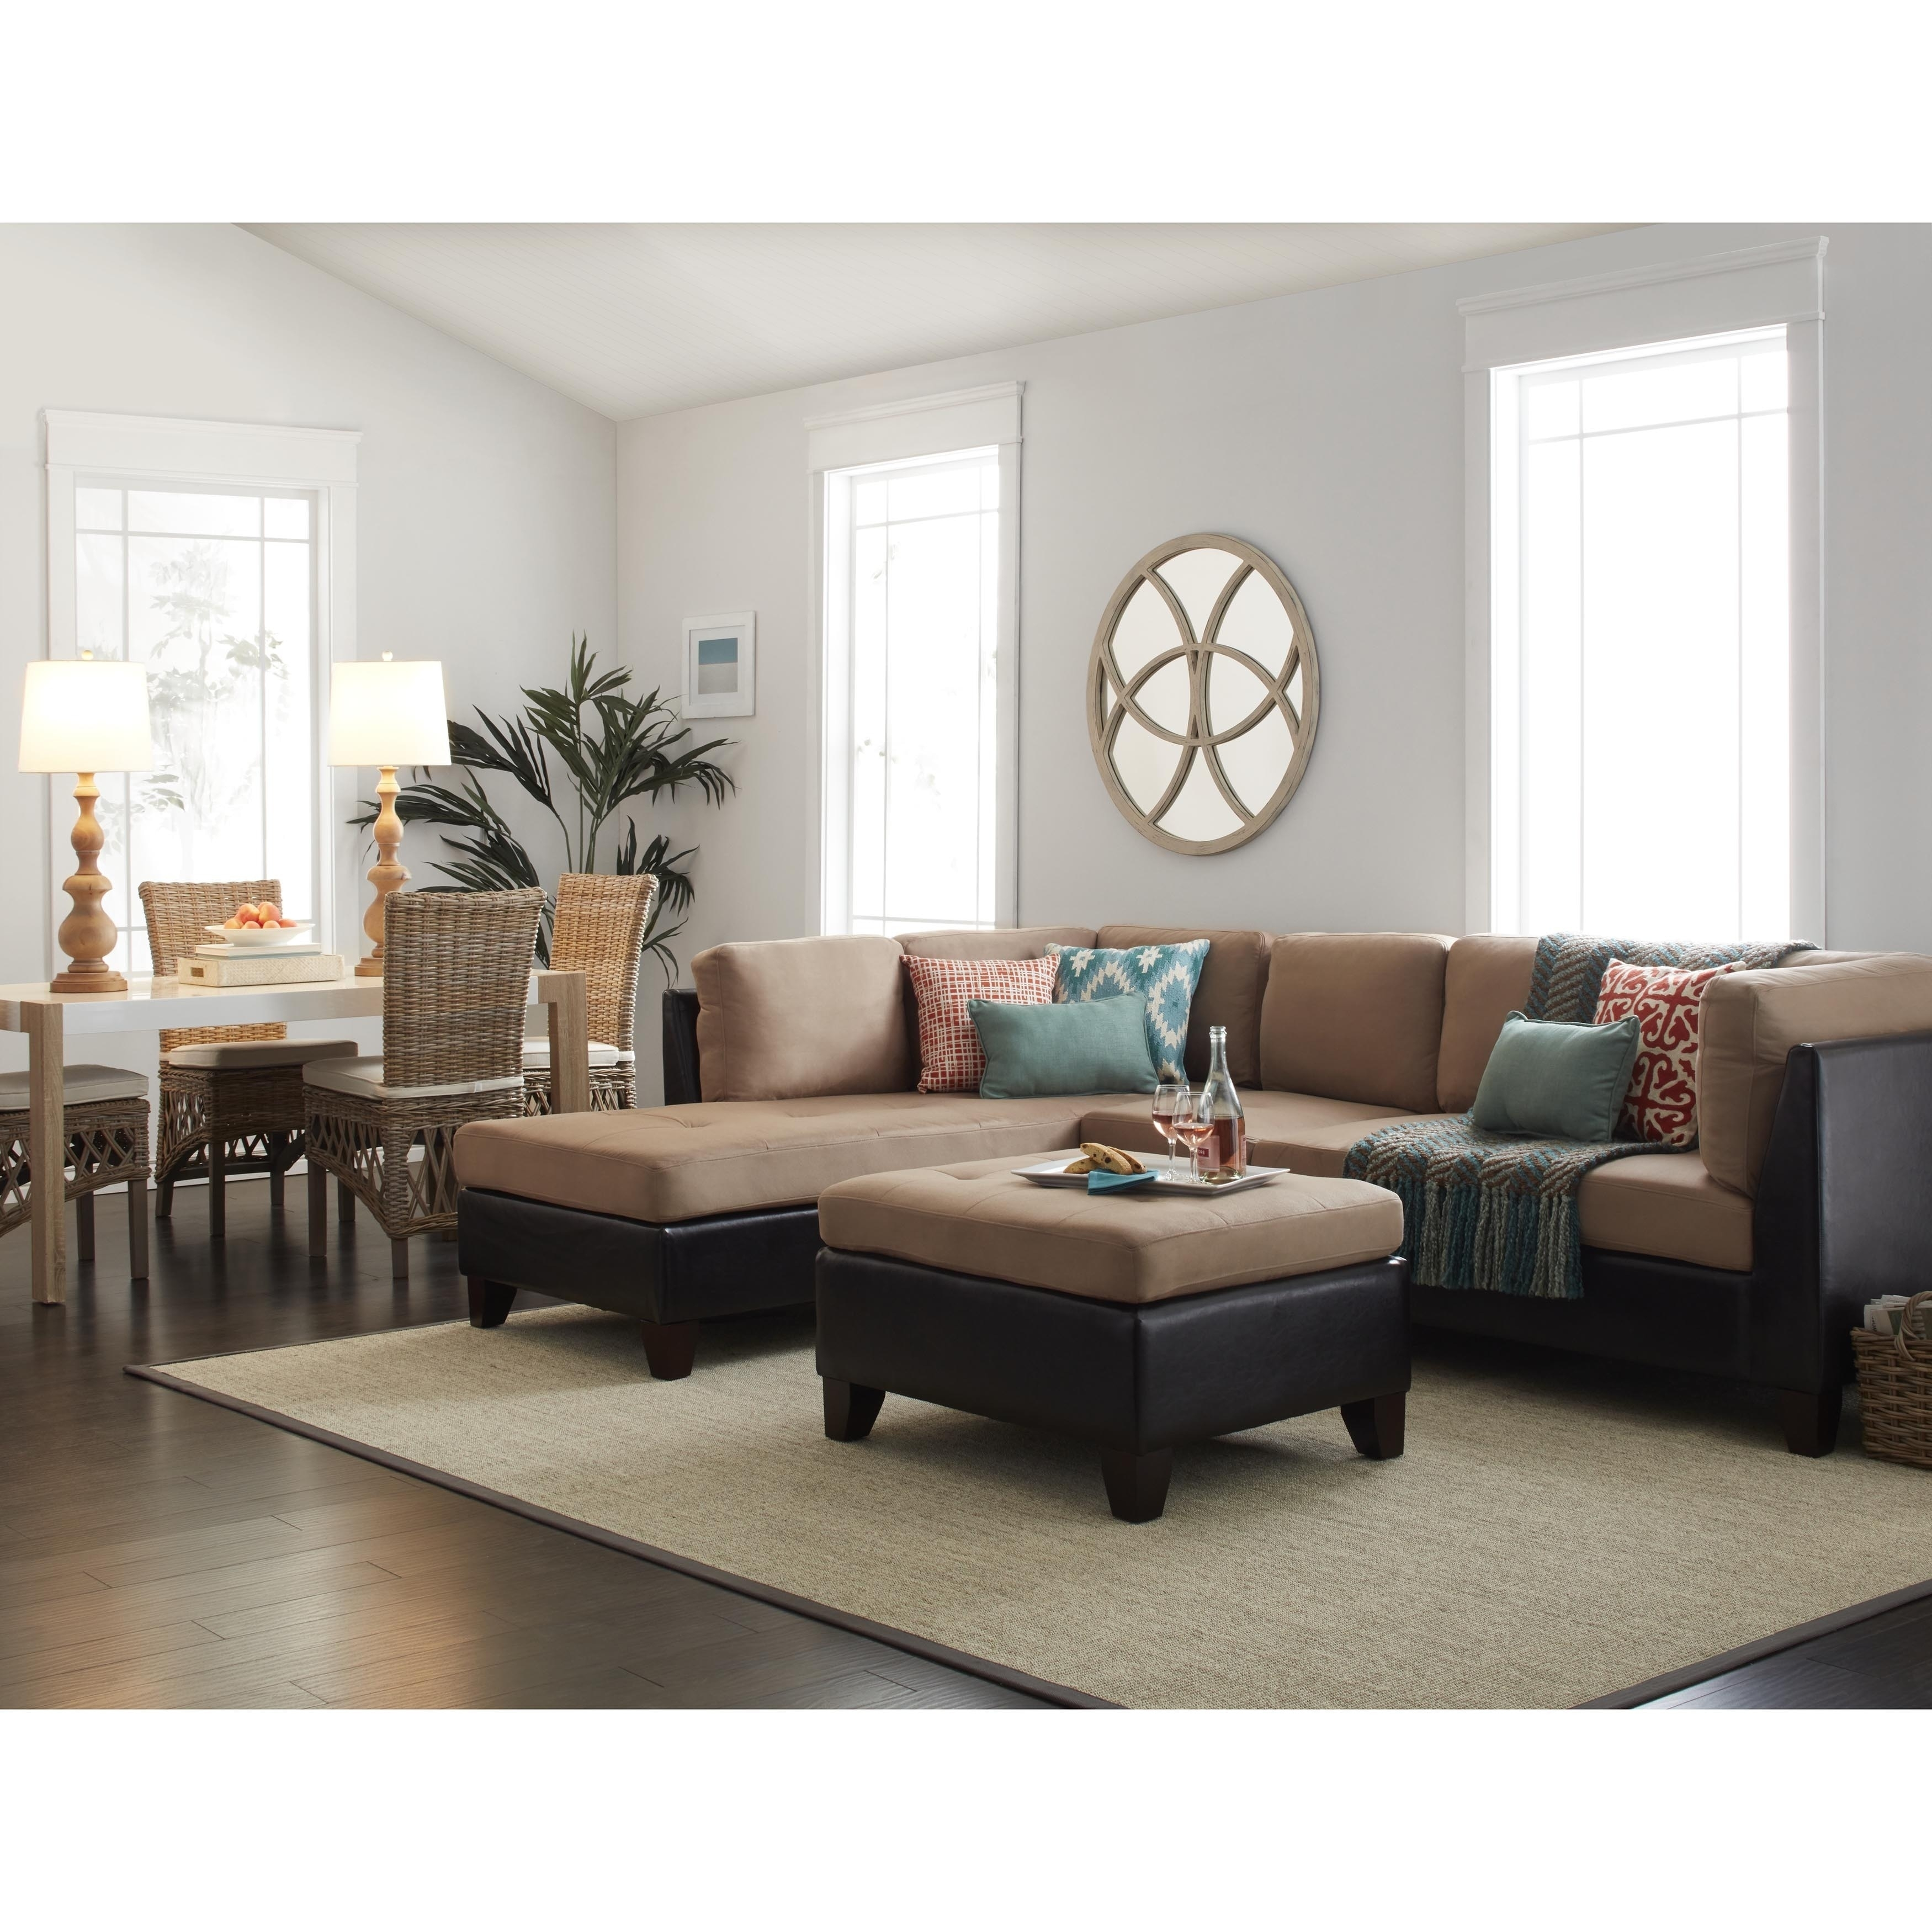 Madison Art Center Design: Modern Beige Leather Sectional Sofa